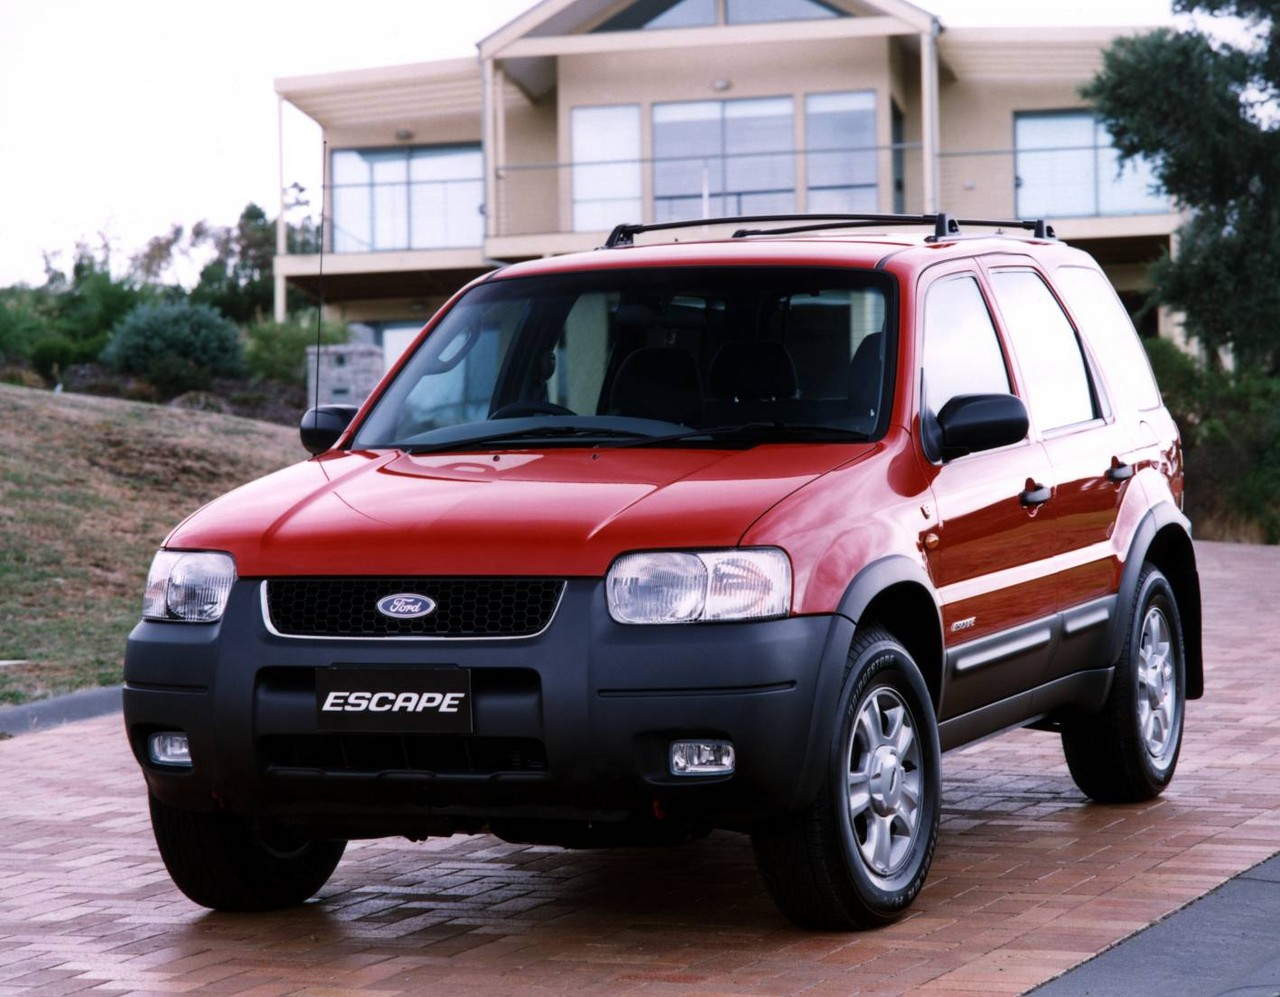 Ford Escape Review 2001 12 Ba Za Zb Zc Zd